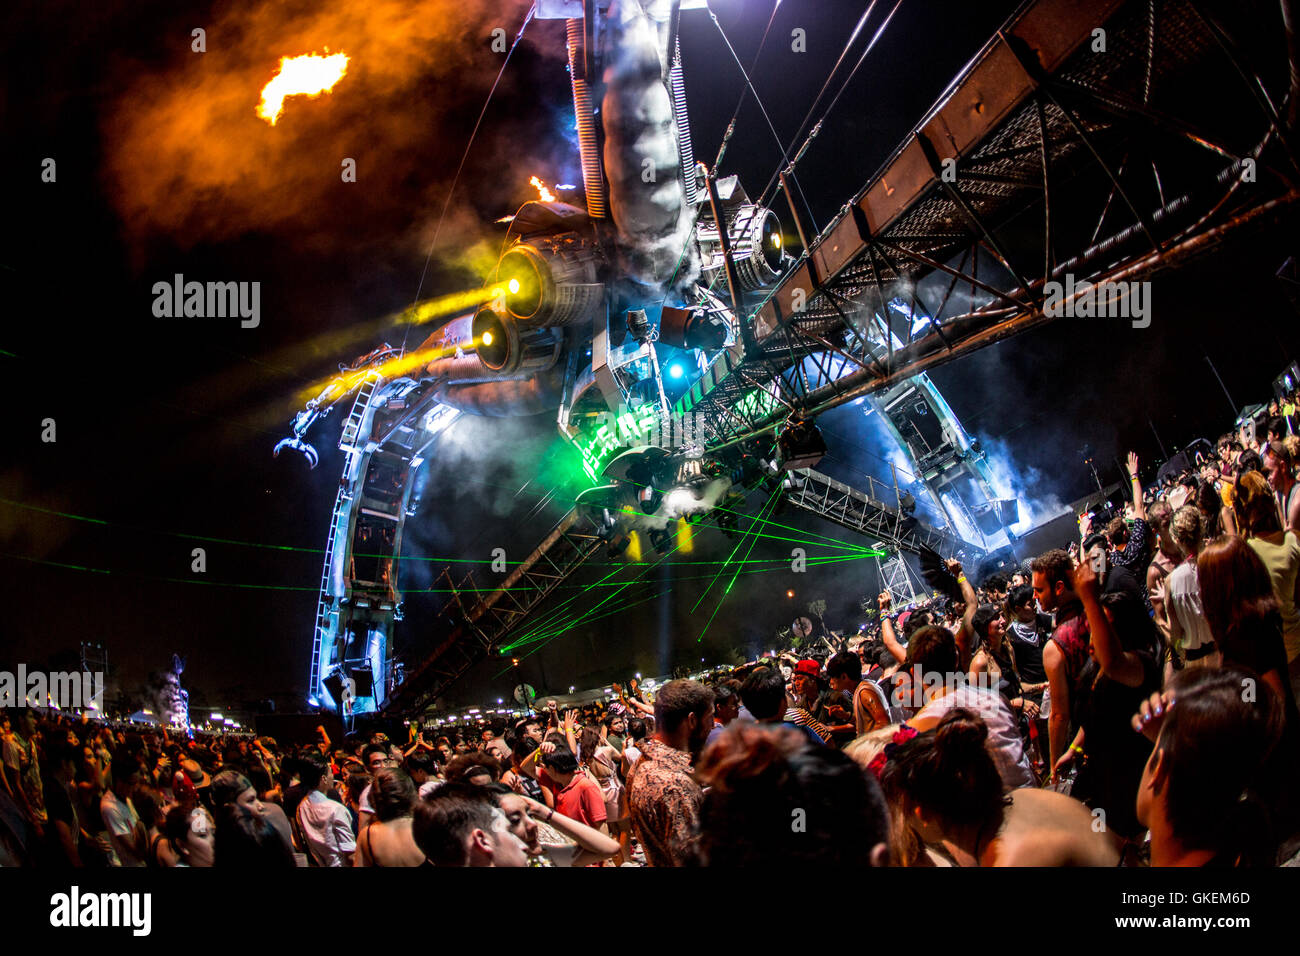 Archive Images Of Arcadia At Various Festivals Around The Globe Featuring Where Glastonbury Boomtown Bangkok United Kingdom When 26 May 2016